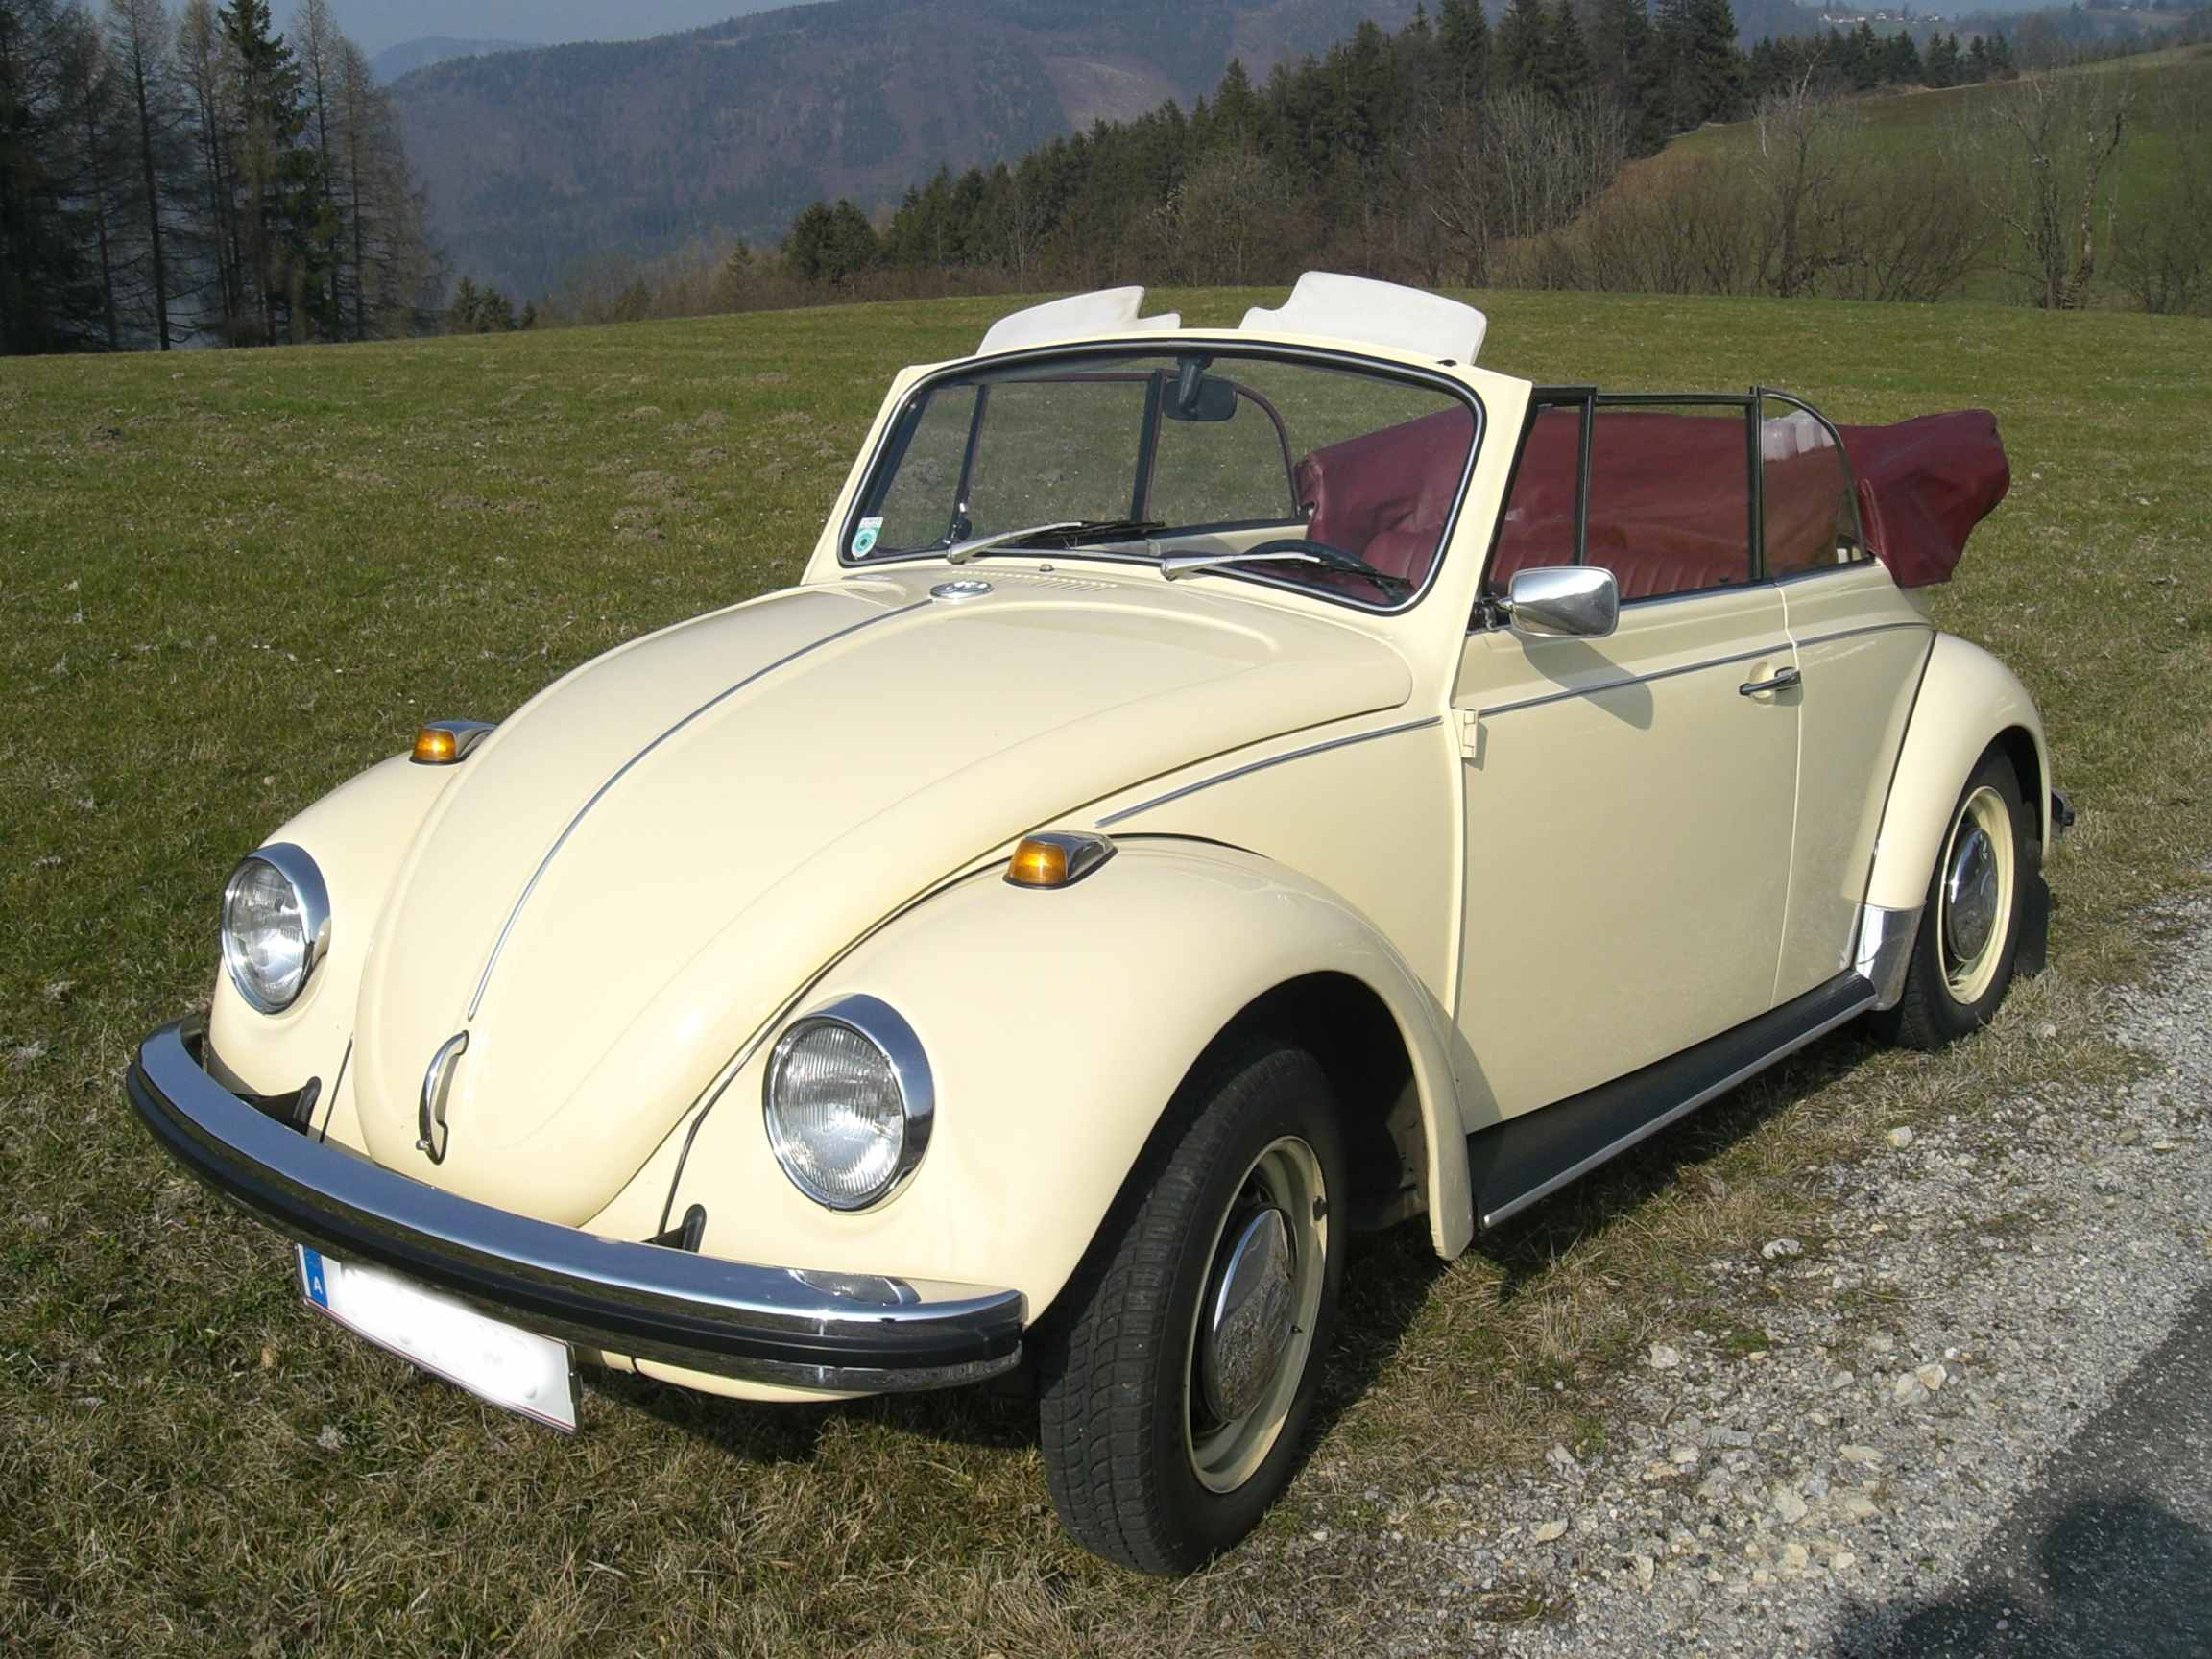 11075_vw_kaefer_1500_cabrio_auto_stof_mg11075.jpg